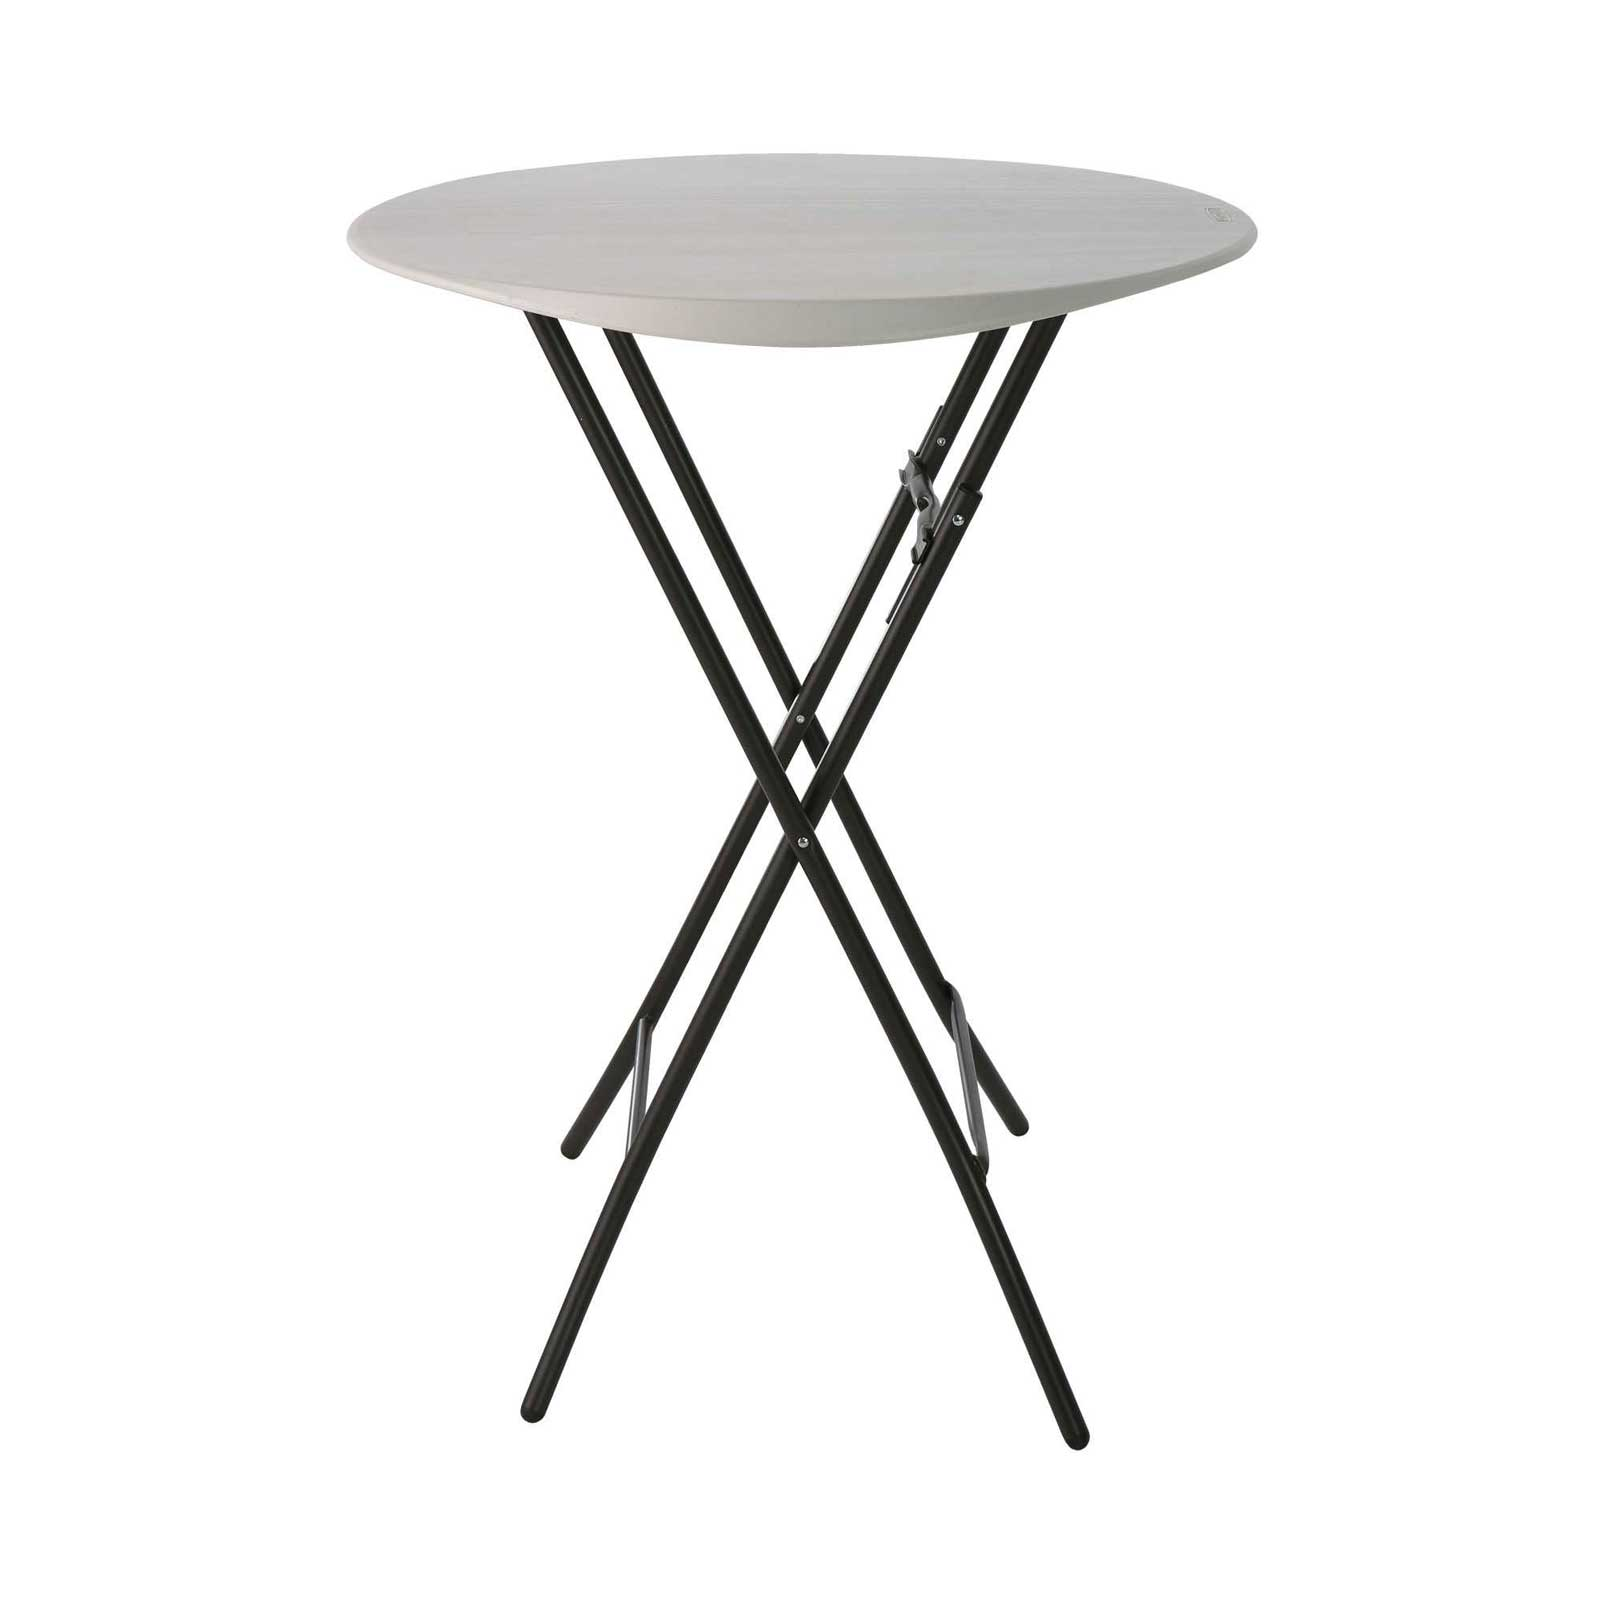 Lifetime 80362 33-Inch Round Bistro Table (almond)